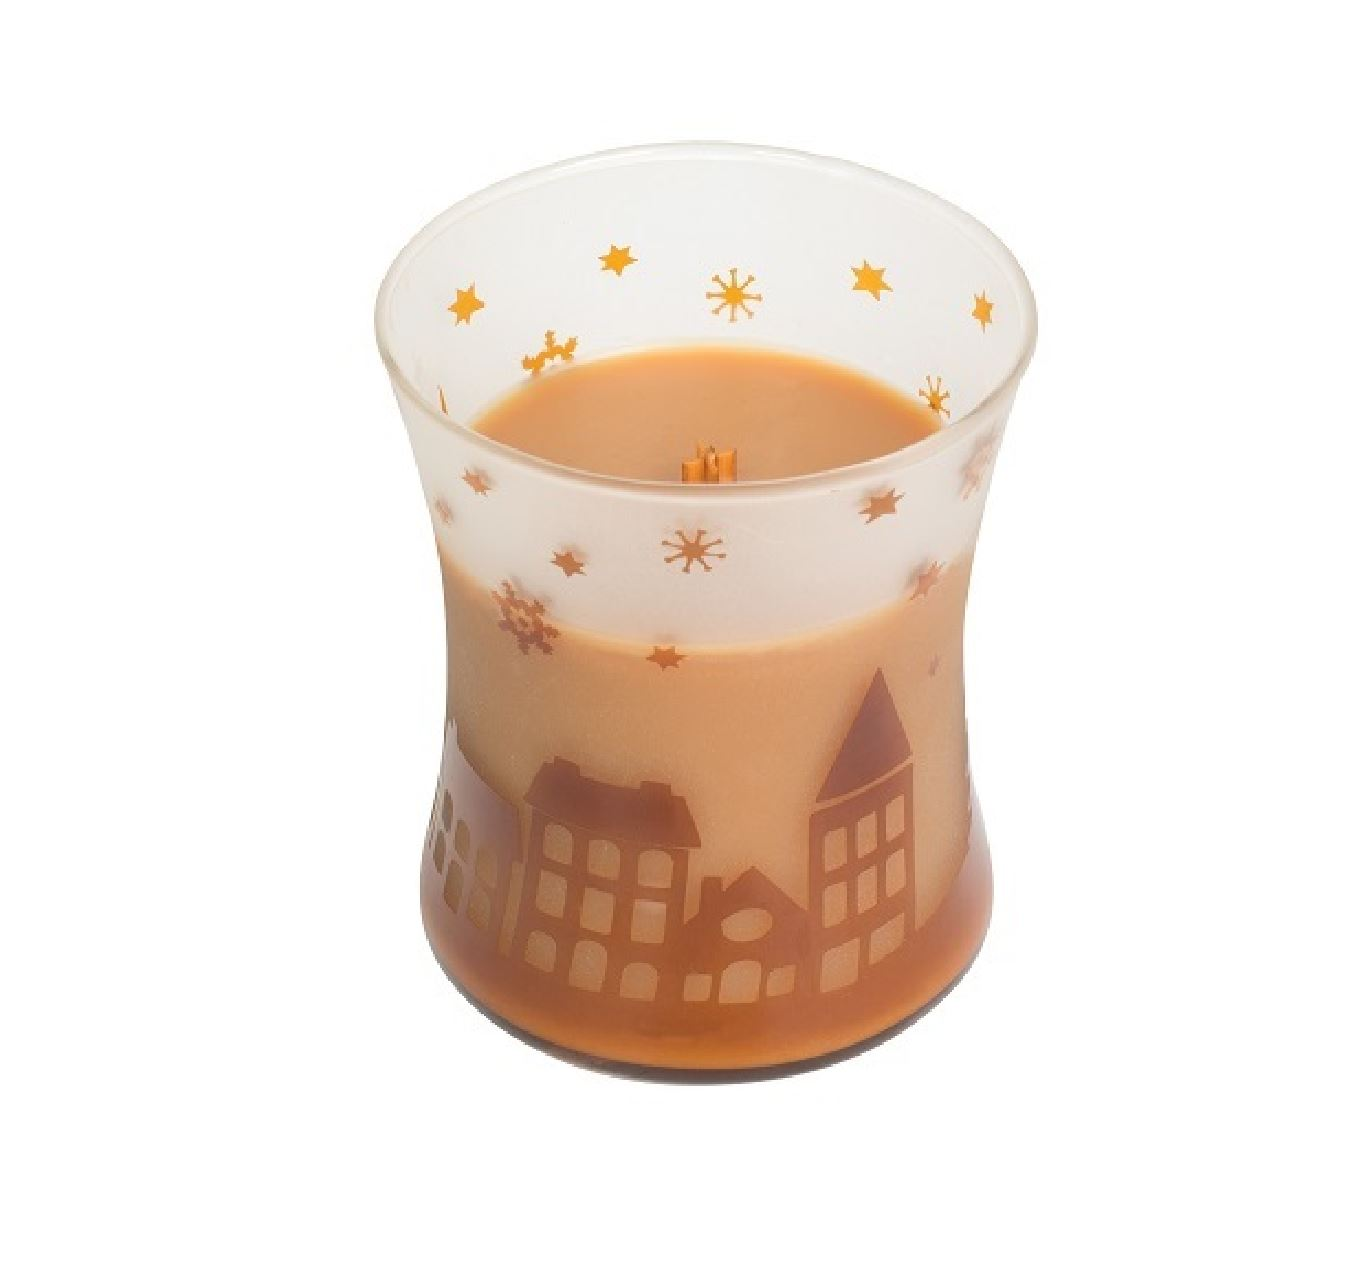 Woodwick-Christmas-Xmas-Special-Edition-Medium-Candle-Jar-Hourglass-Home-Gift